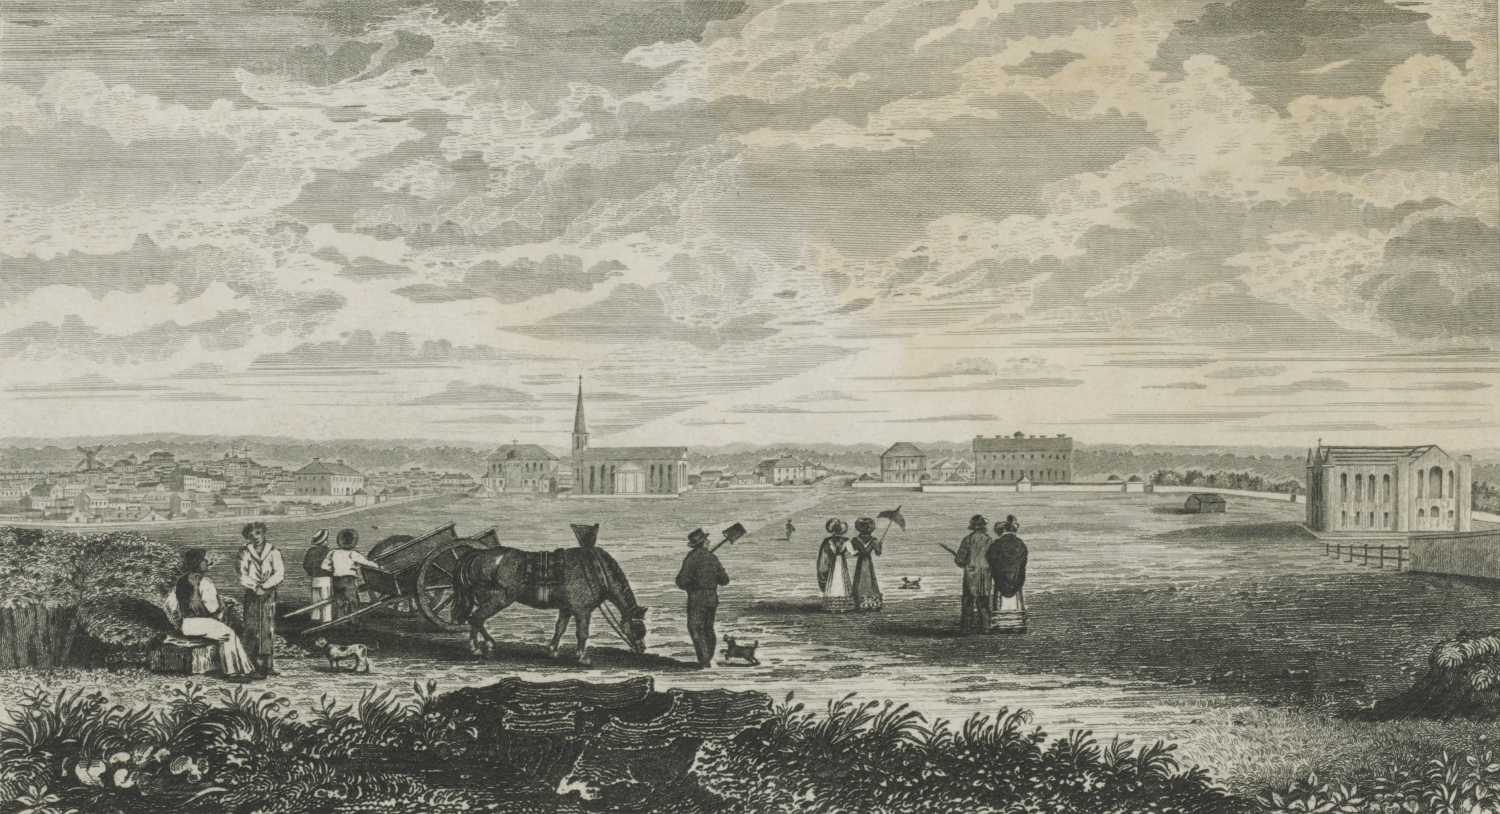 Etching showing workers and sydneysiders in the foreground with the Hyde Park Barracks visible in the background.